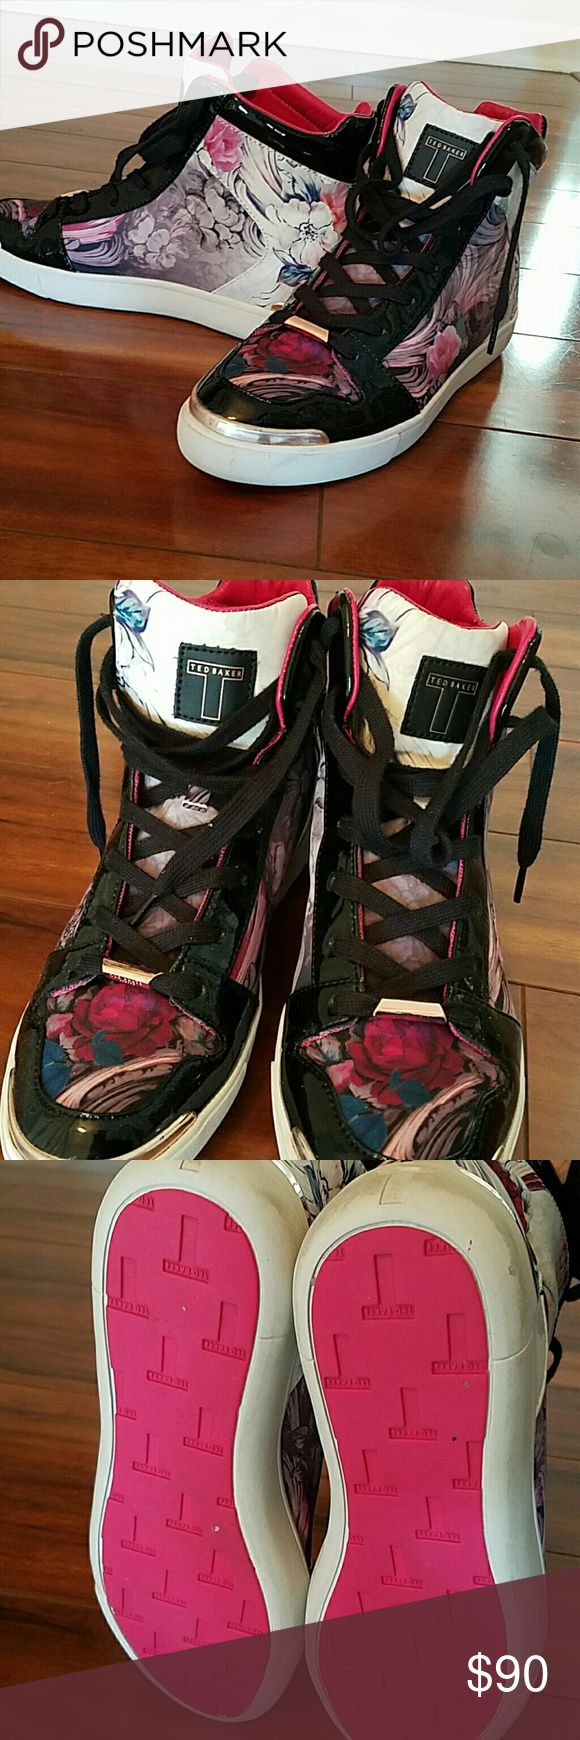 😎Ted Baker Shoes Beautiful Flower Tennis Shoe High Top Ted Baker Shoes Sneakers